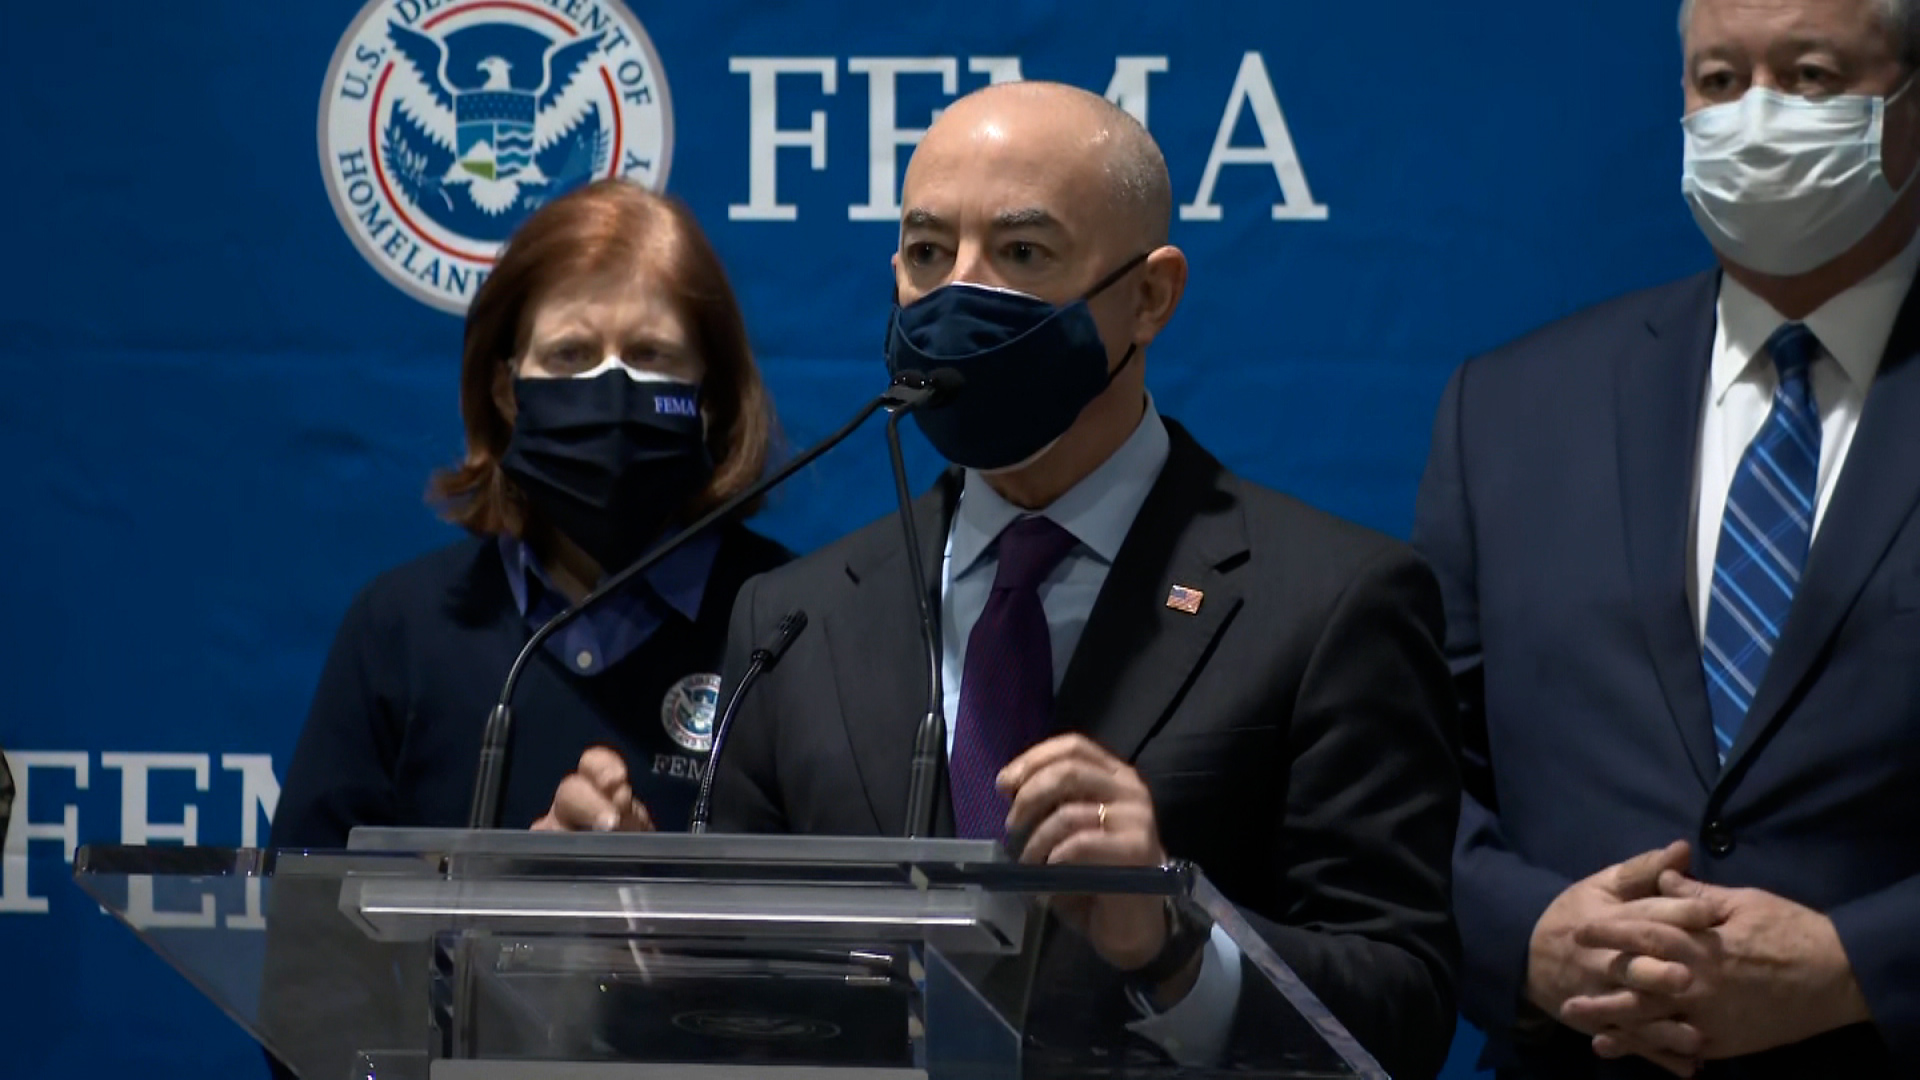 Homeland Security Secretary Alejandro Mayorkas speaks at a FEMA-supported vaccination center in Philadelphia on March 2.